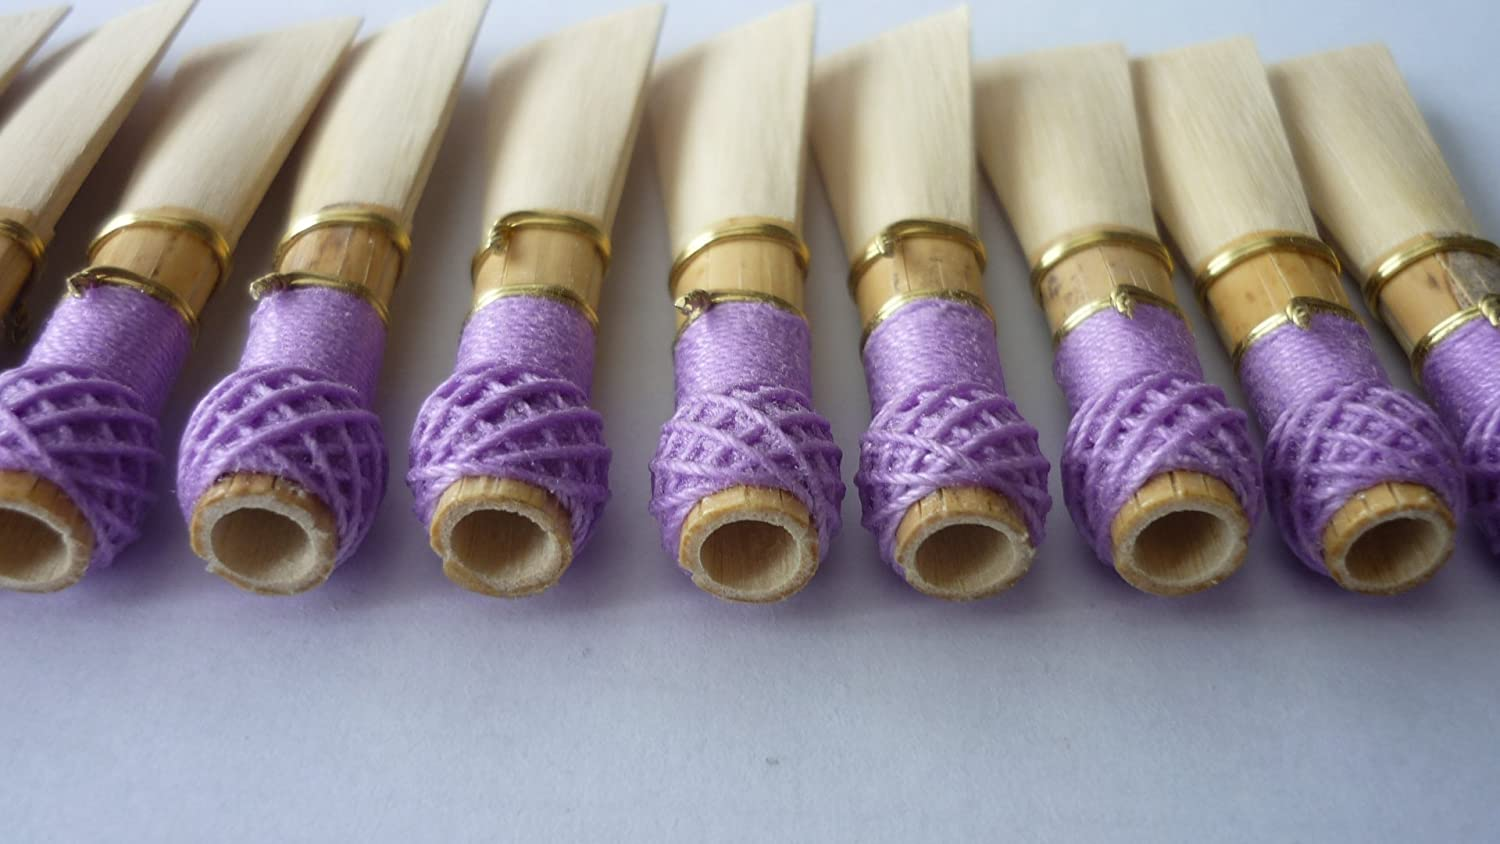 10 Bassoon Reed Blanks from Rieger canes /dukov_reeds RrF2/